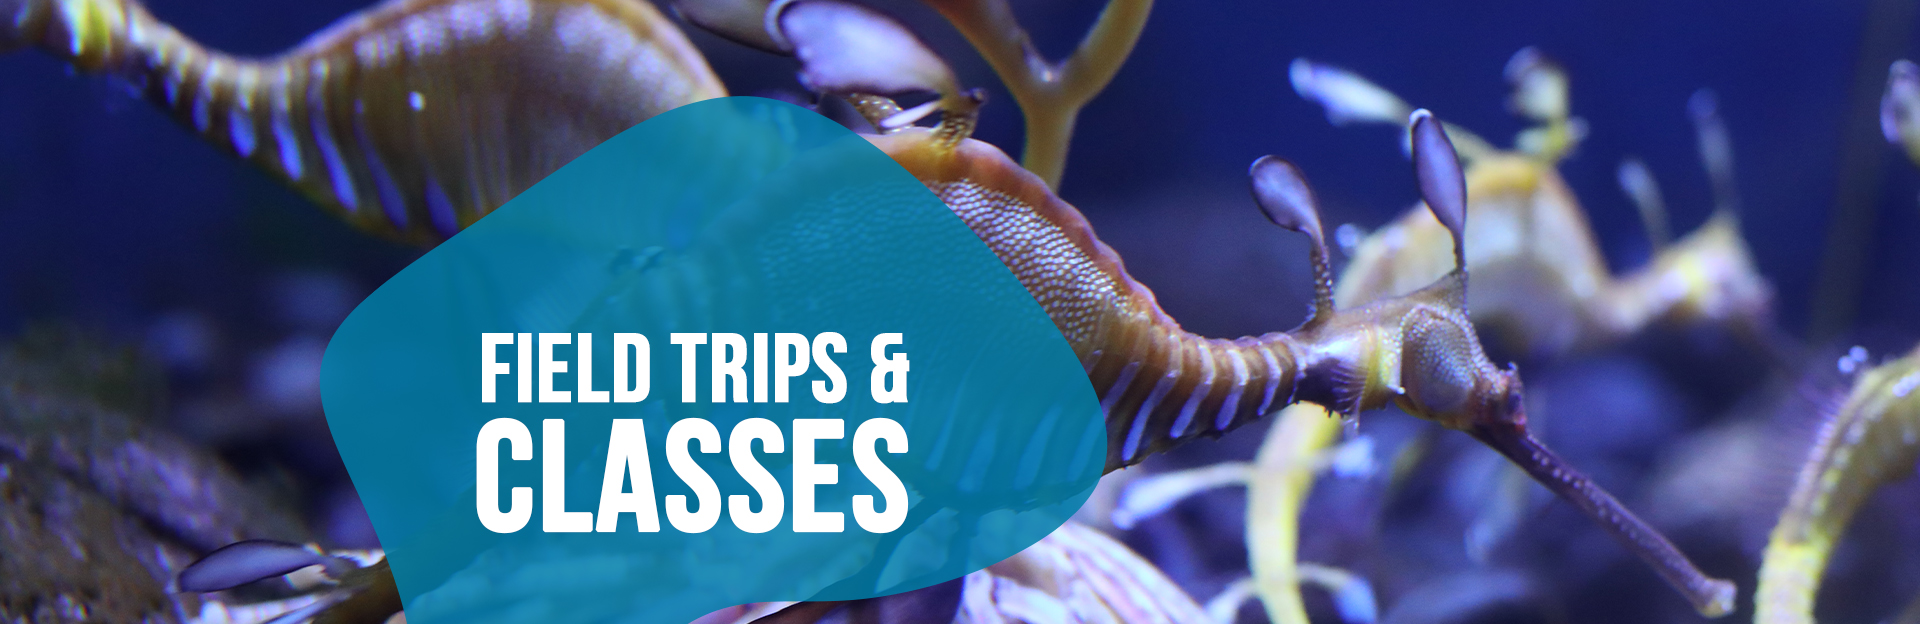 header image for field trips and classes